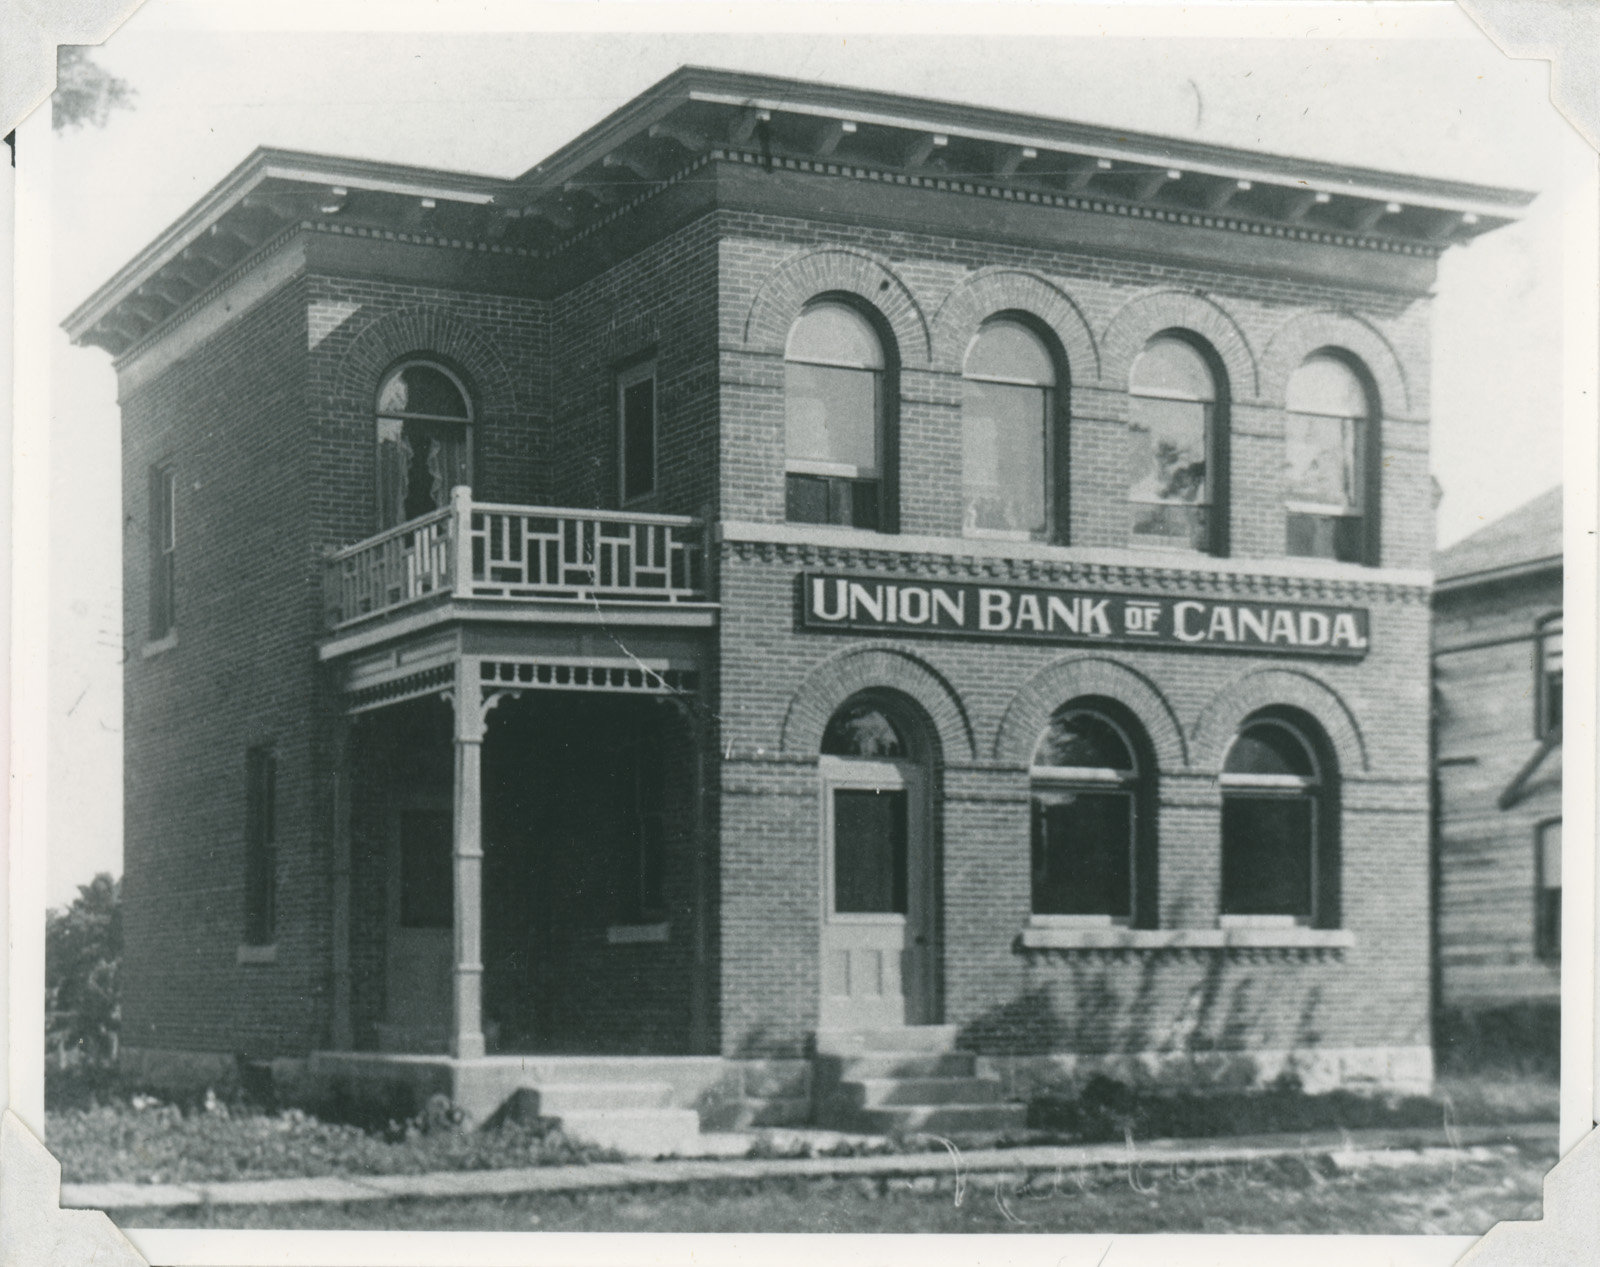 Home Bank Of Canada Full Image View Union Bank Of Canada Lakes And Islands